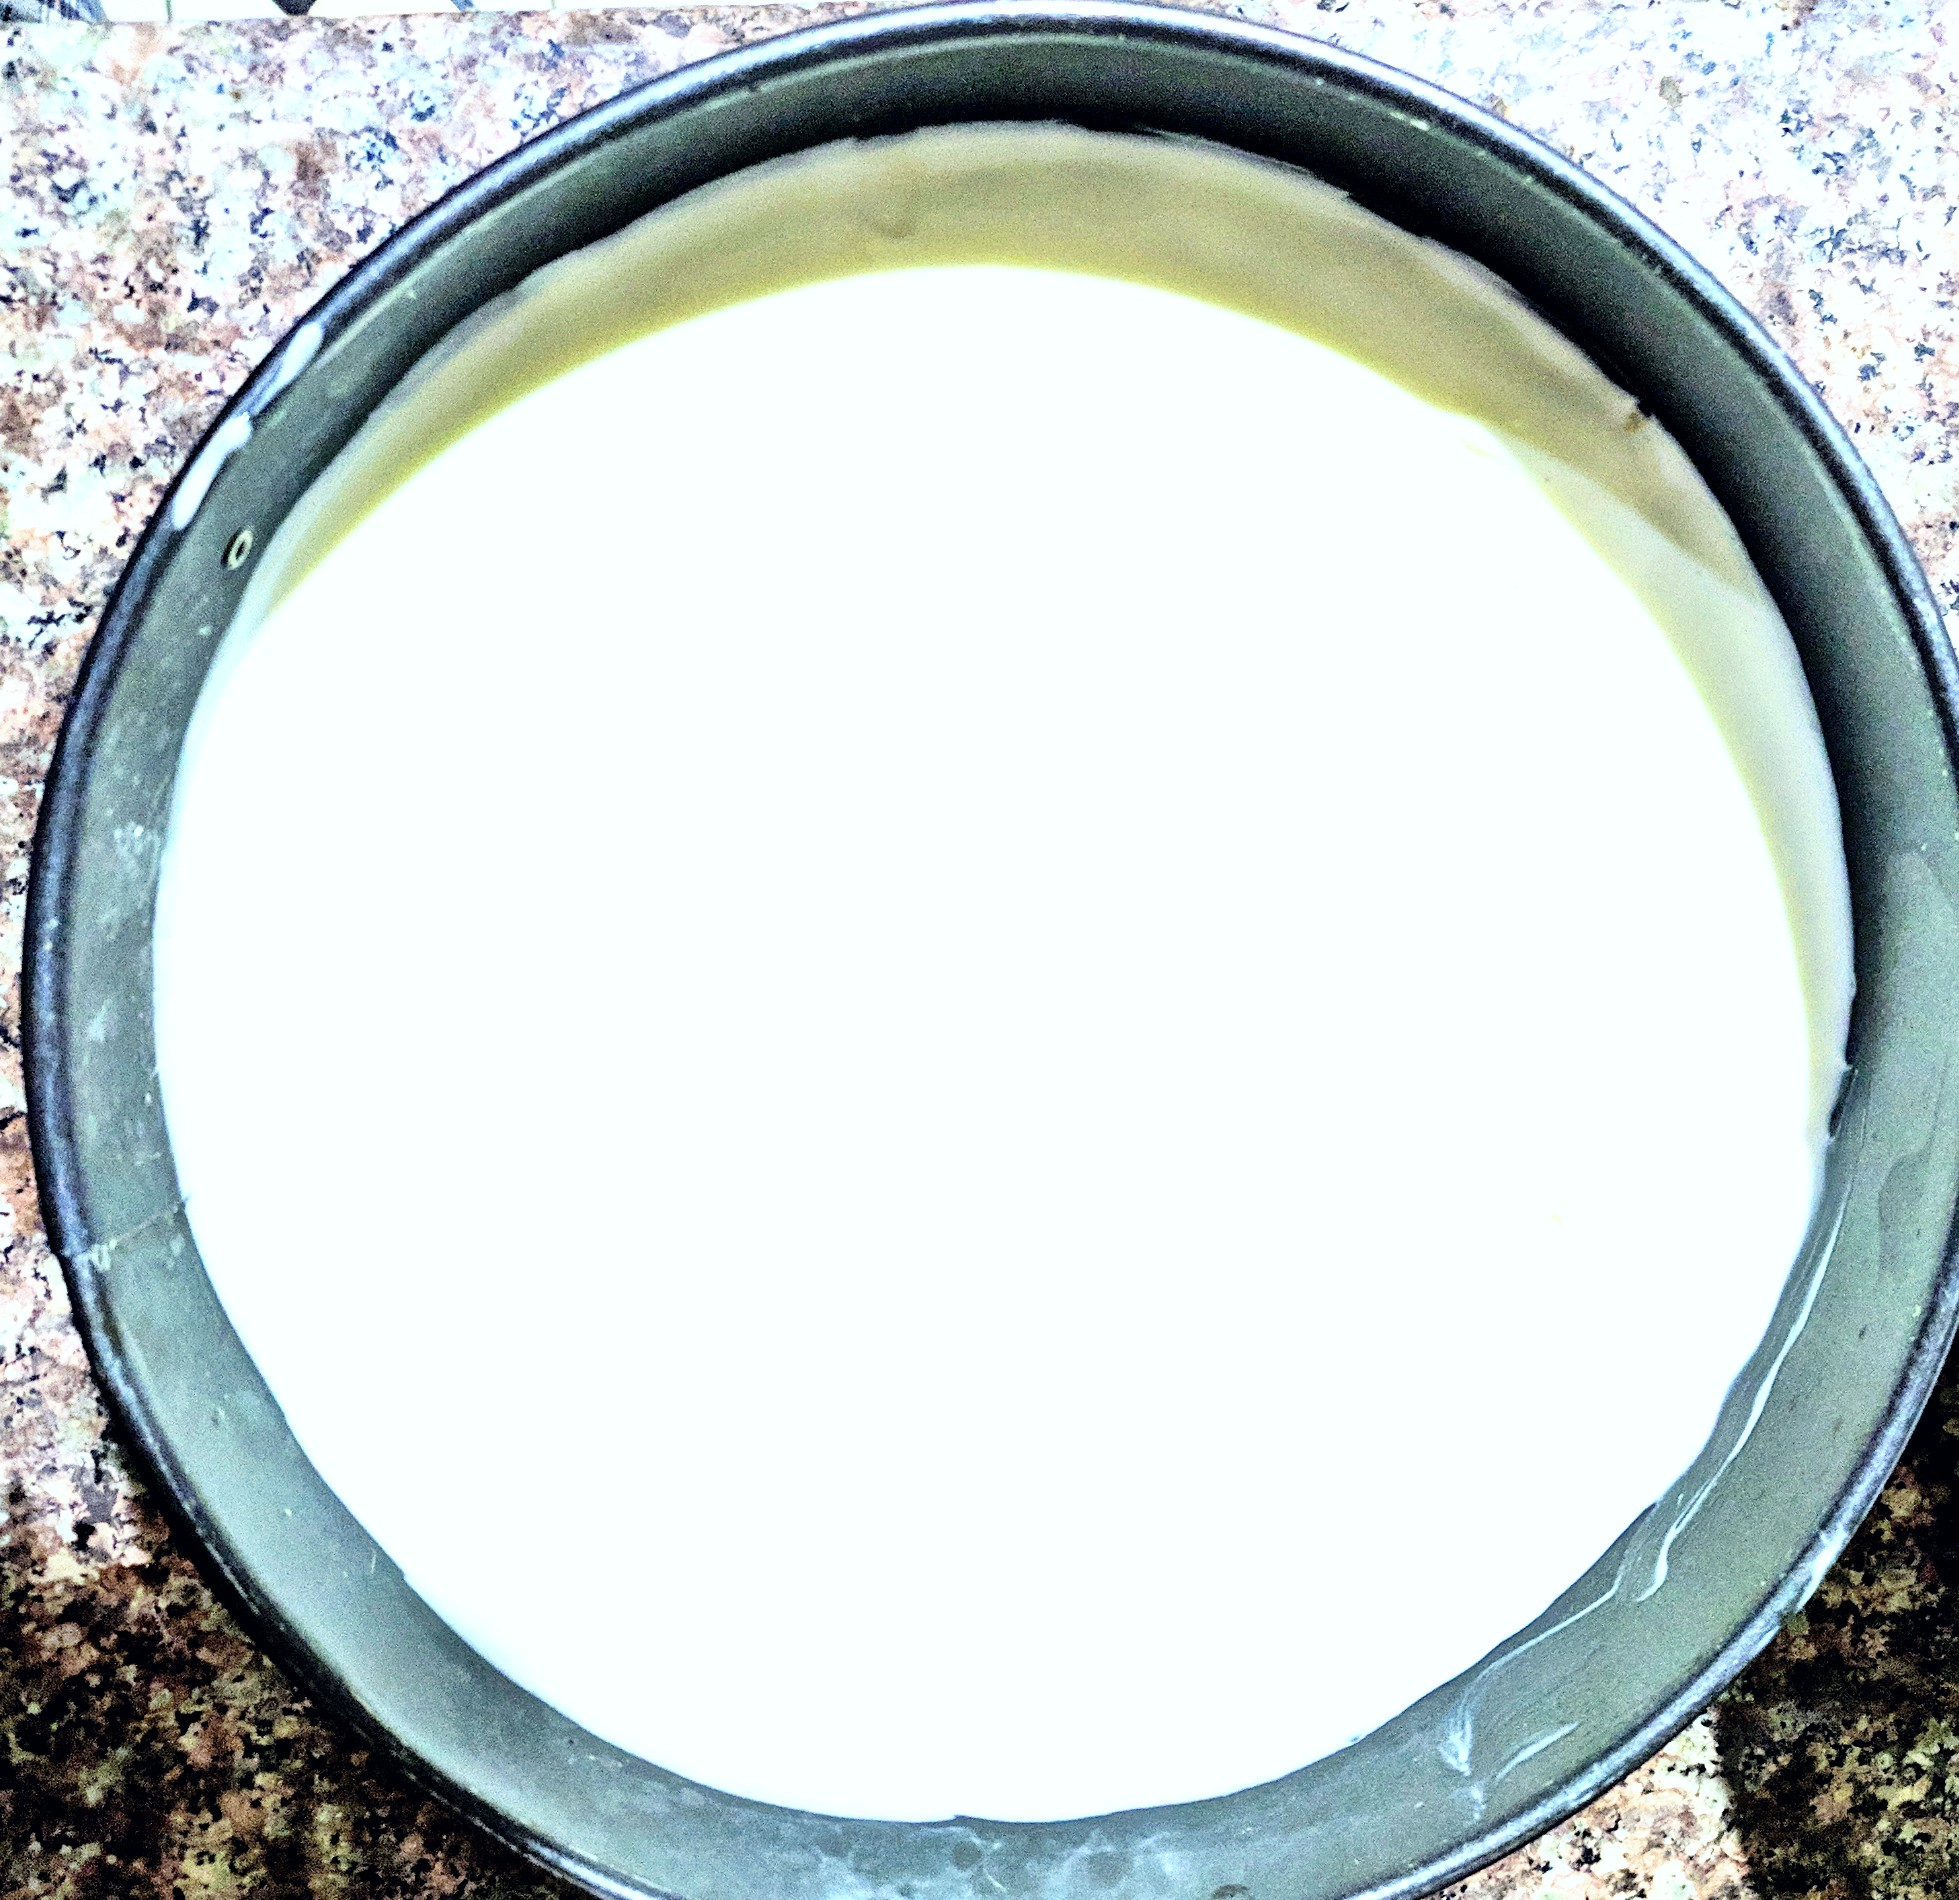 Cream cheese filling FOR CHEESECAKE